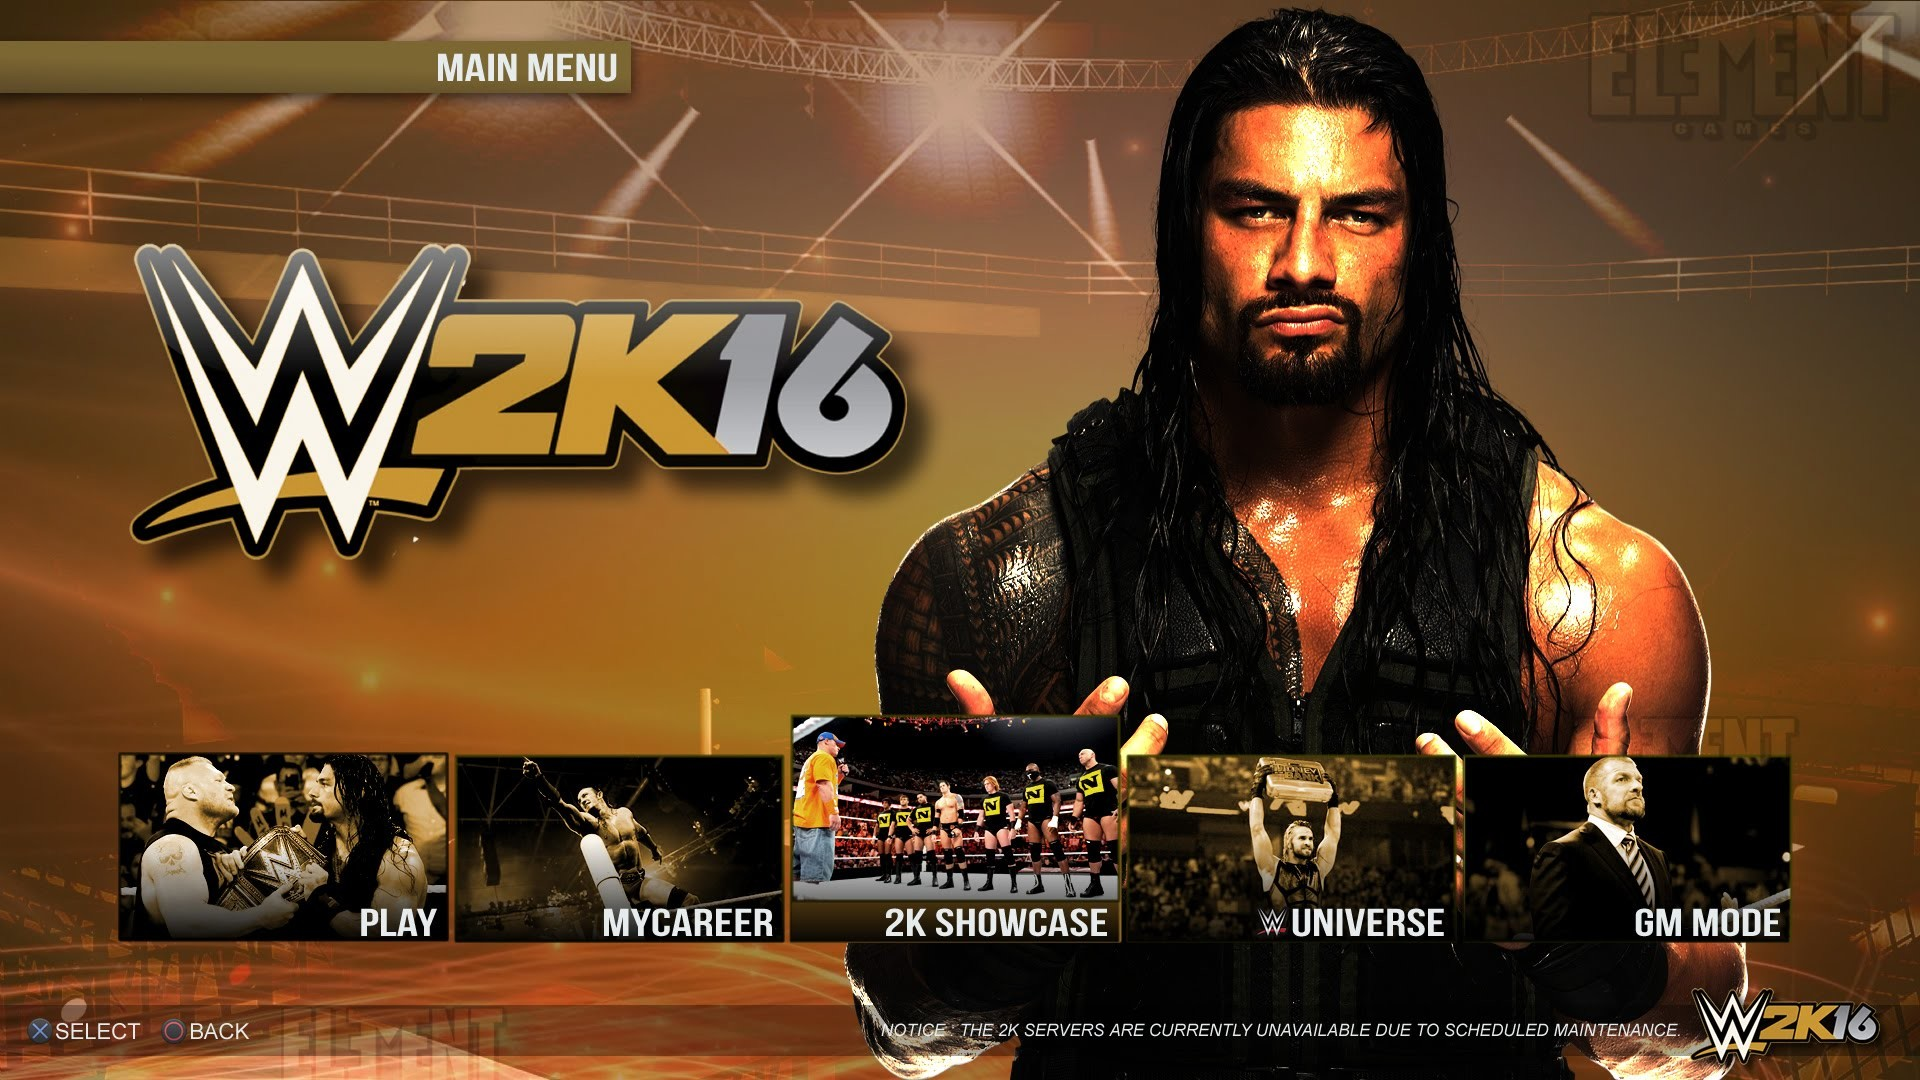 17 Best images about Wwe 2k16 on Pinterest | The o'jays, Superstar and WWE